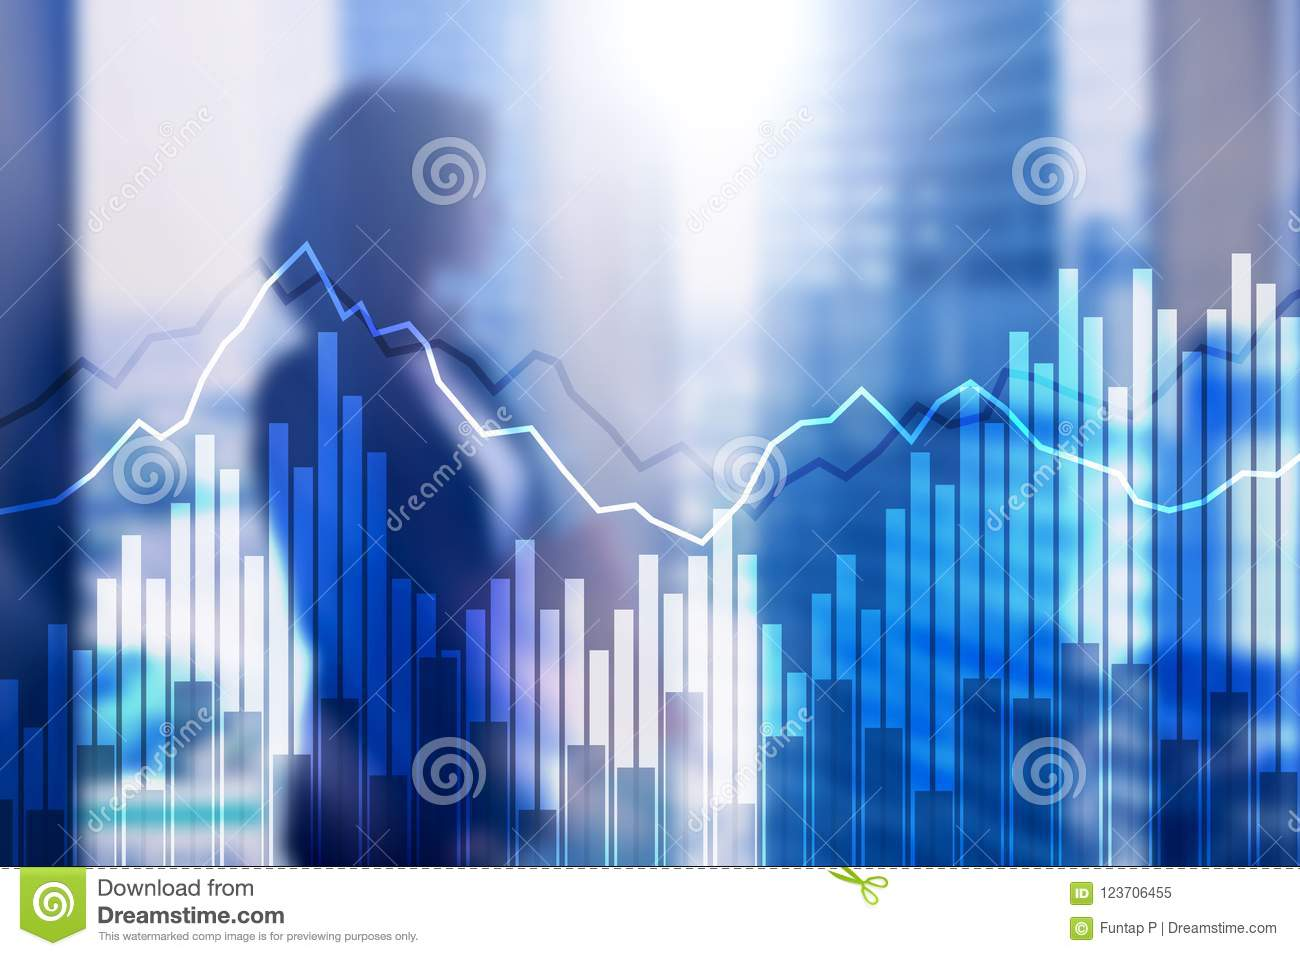 Double exposure Financial graphs and diagrams. Business, economics and investment concept